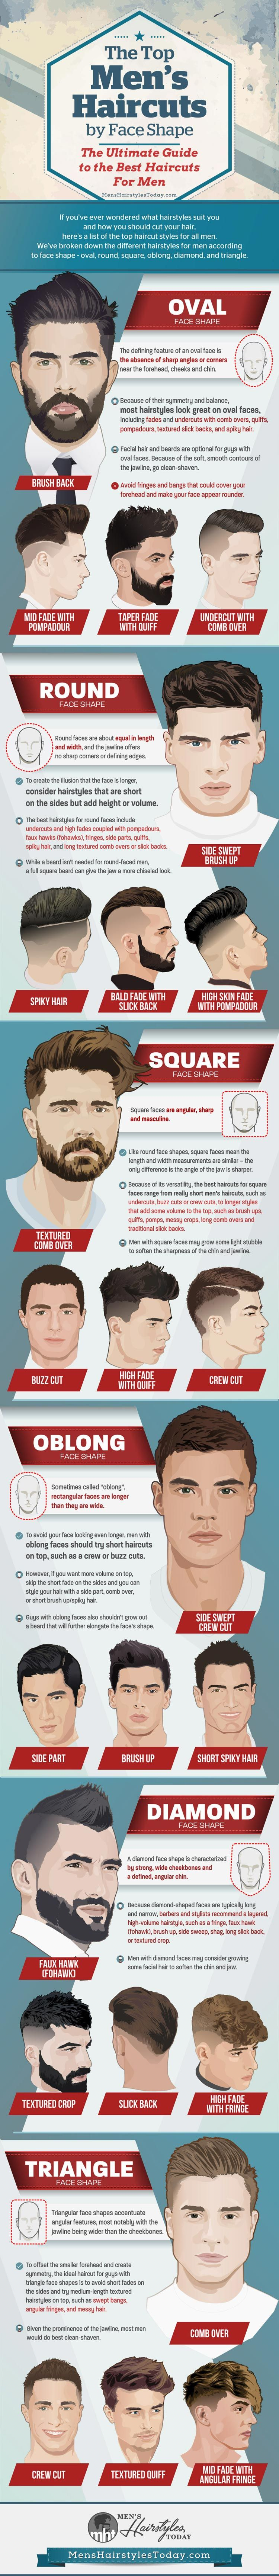 Best Haircuts For Men By Face Shape #Infographic